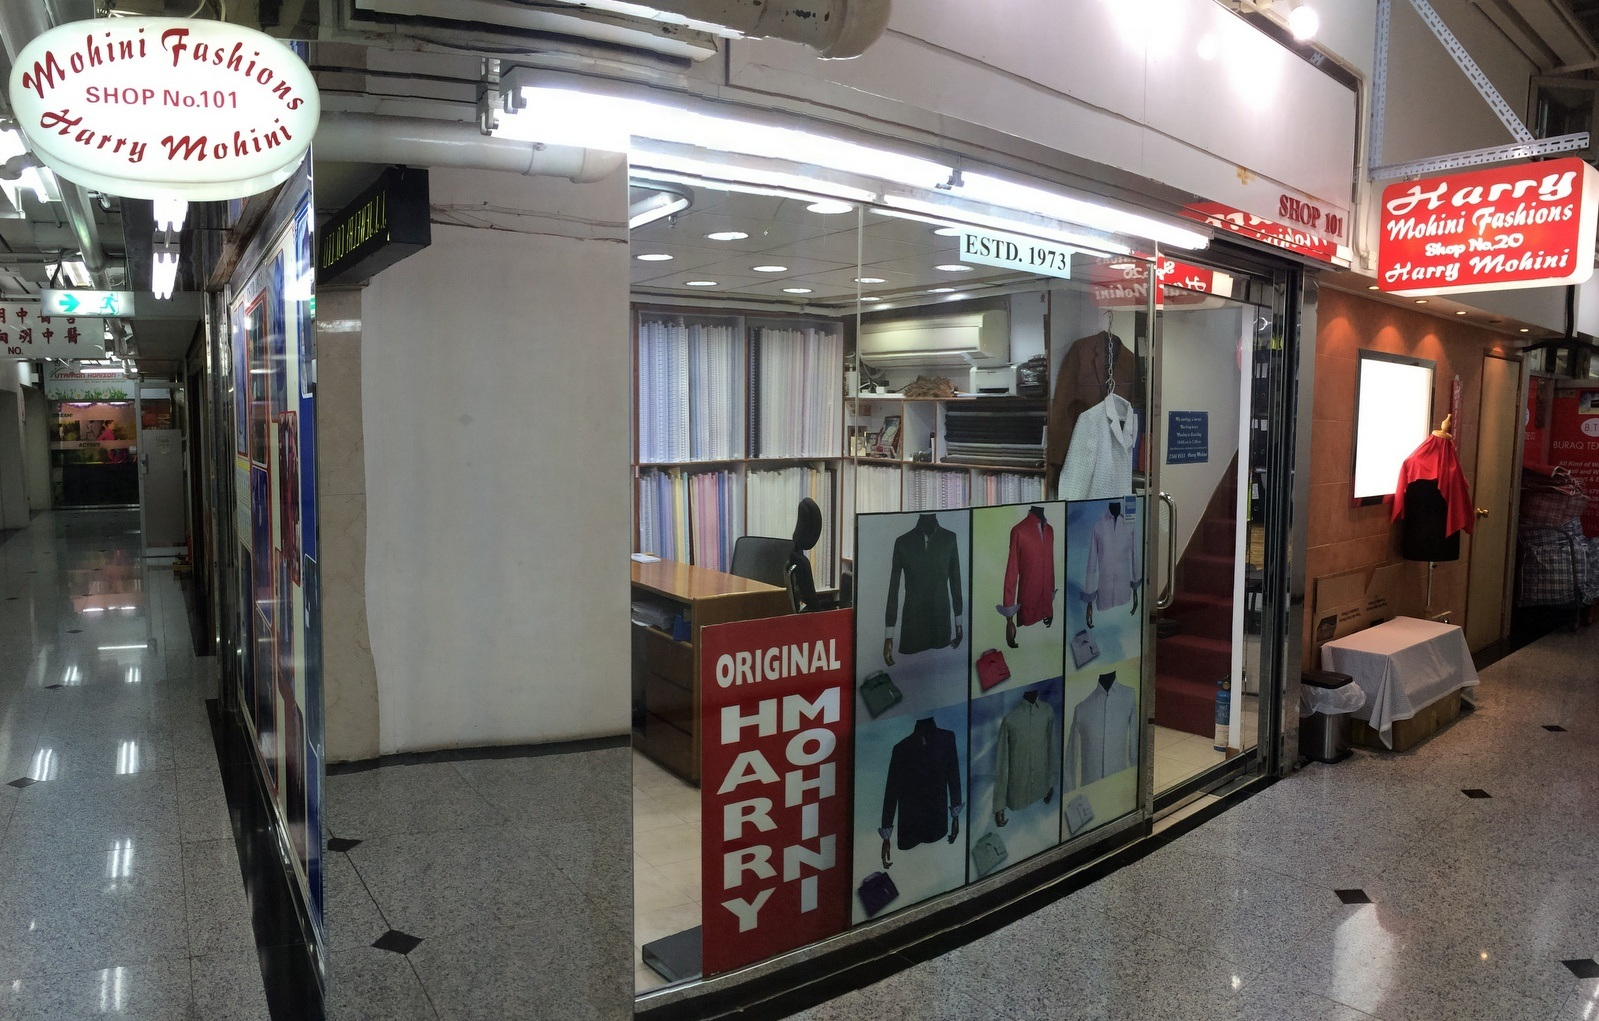 Since 1973 Mohini Fashions has taken the lead as one of the finest custom tailors of Hong Kong.